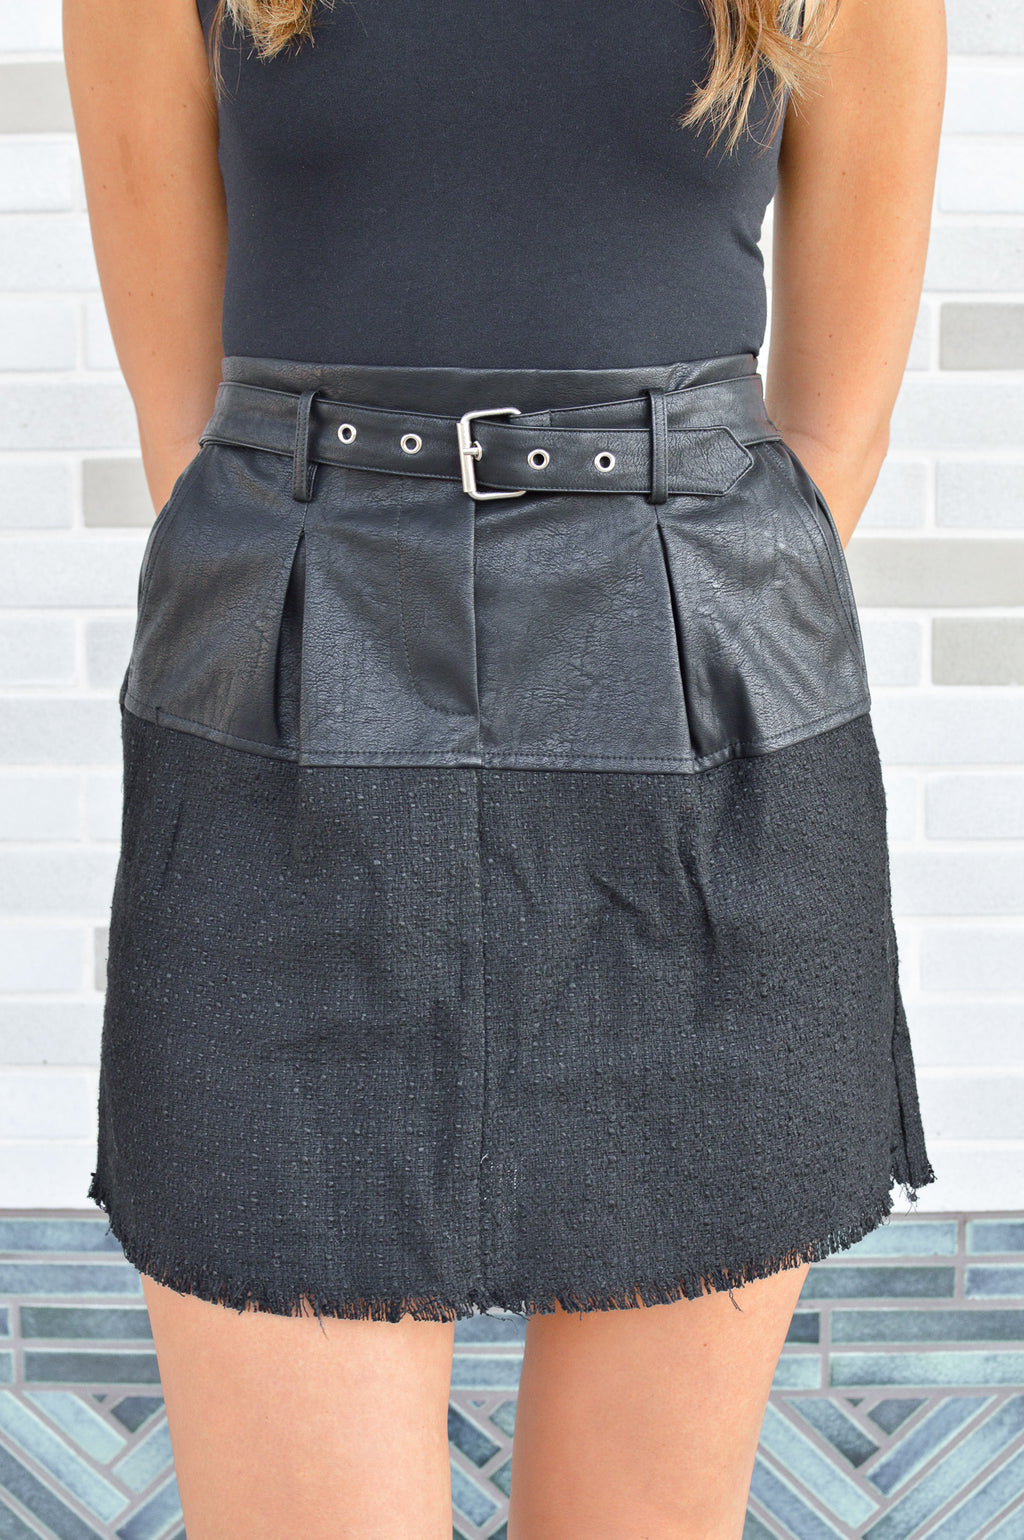 MODERN DAY NANCY DREW SKIRT